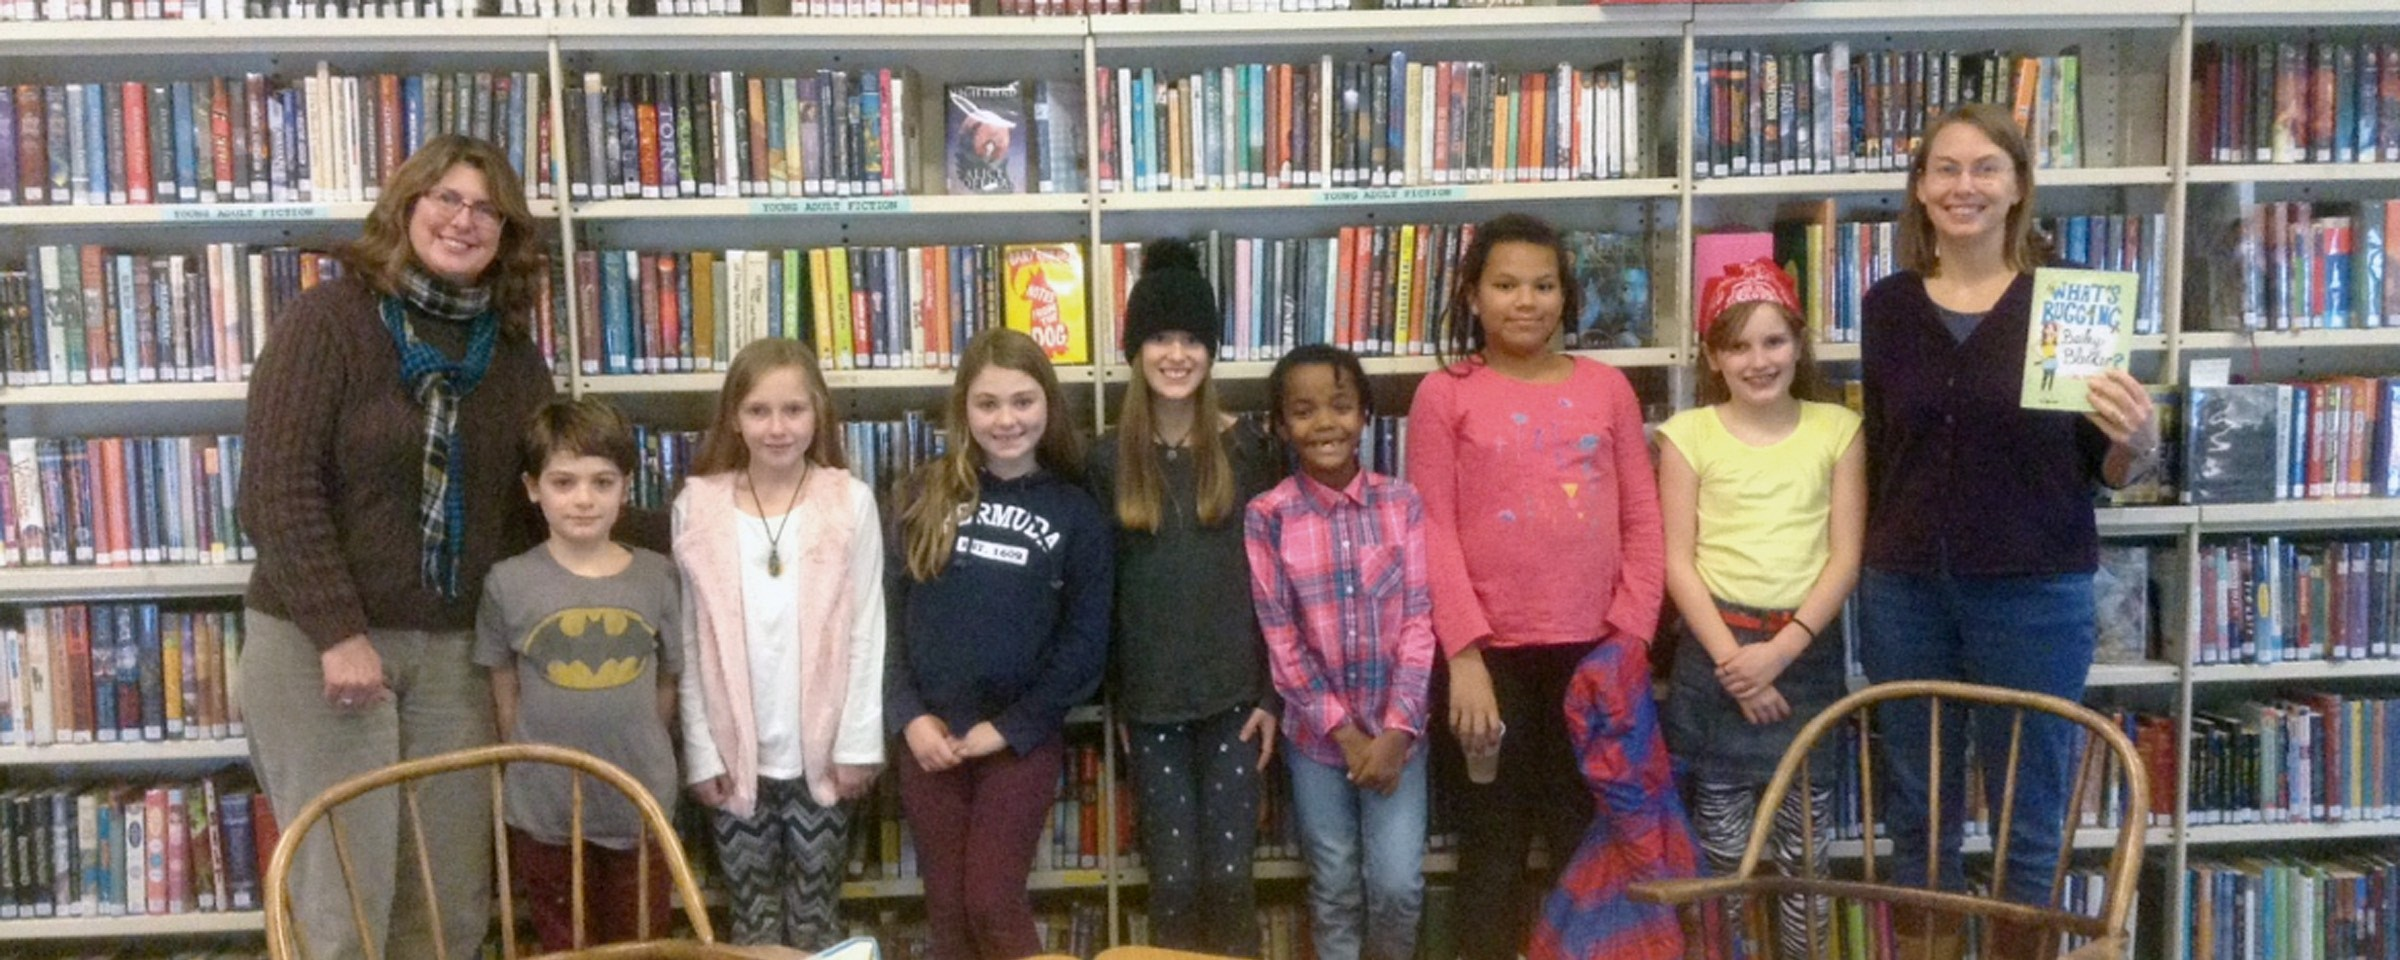 Terri Bauld, Graves Memorial Library children's librarian, left, joined students Ptolemy Tyler, Morgan Rogers, Elsa Liberatore, Isabel Esch, Amara Roberts, Riley Roberts, Annabelle Wainman in meeting author Gail Donovan, right. //SUBMITTED PHOTO/Cou rtes y of She lley Wiggleswo rth